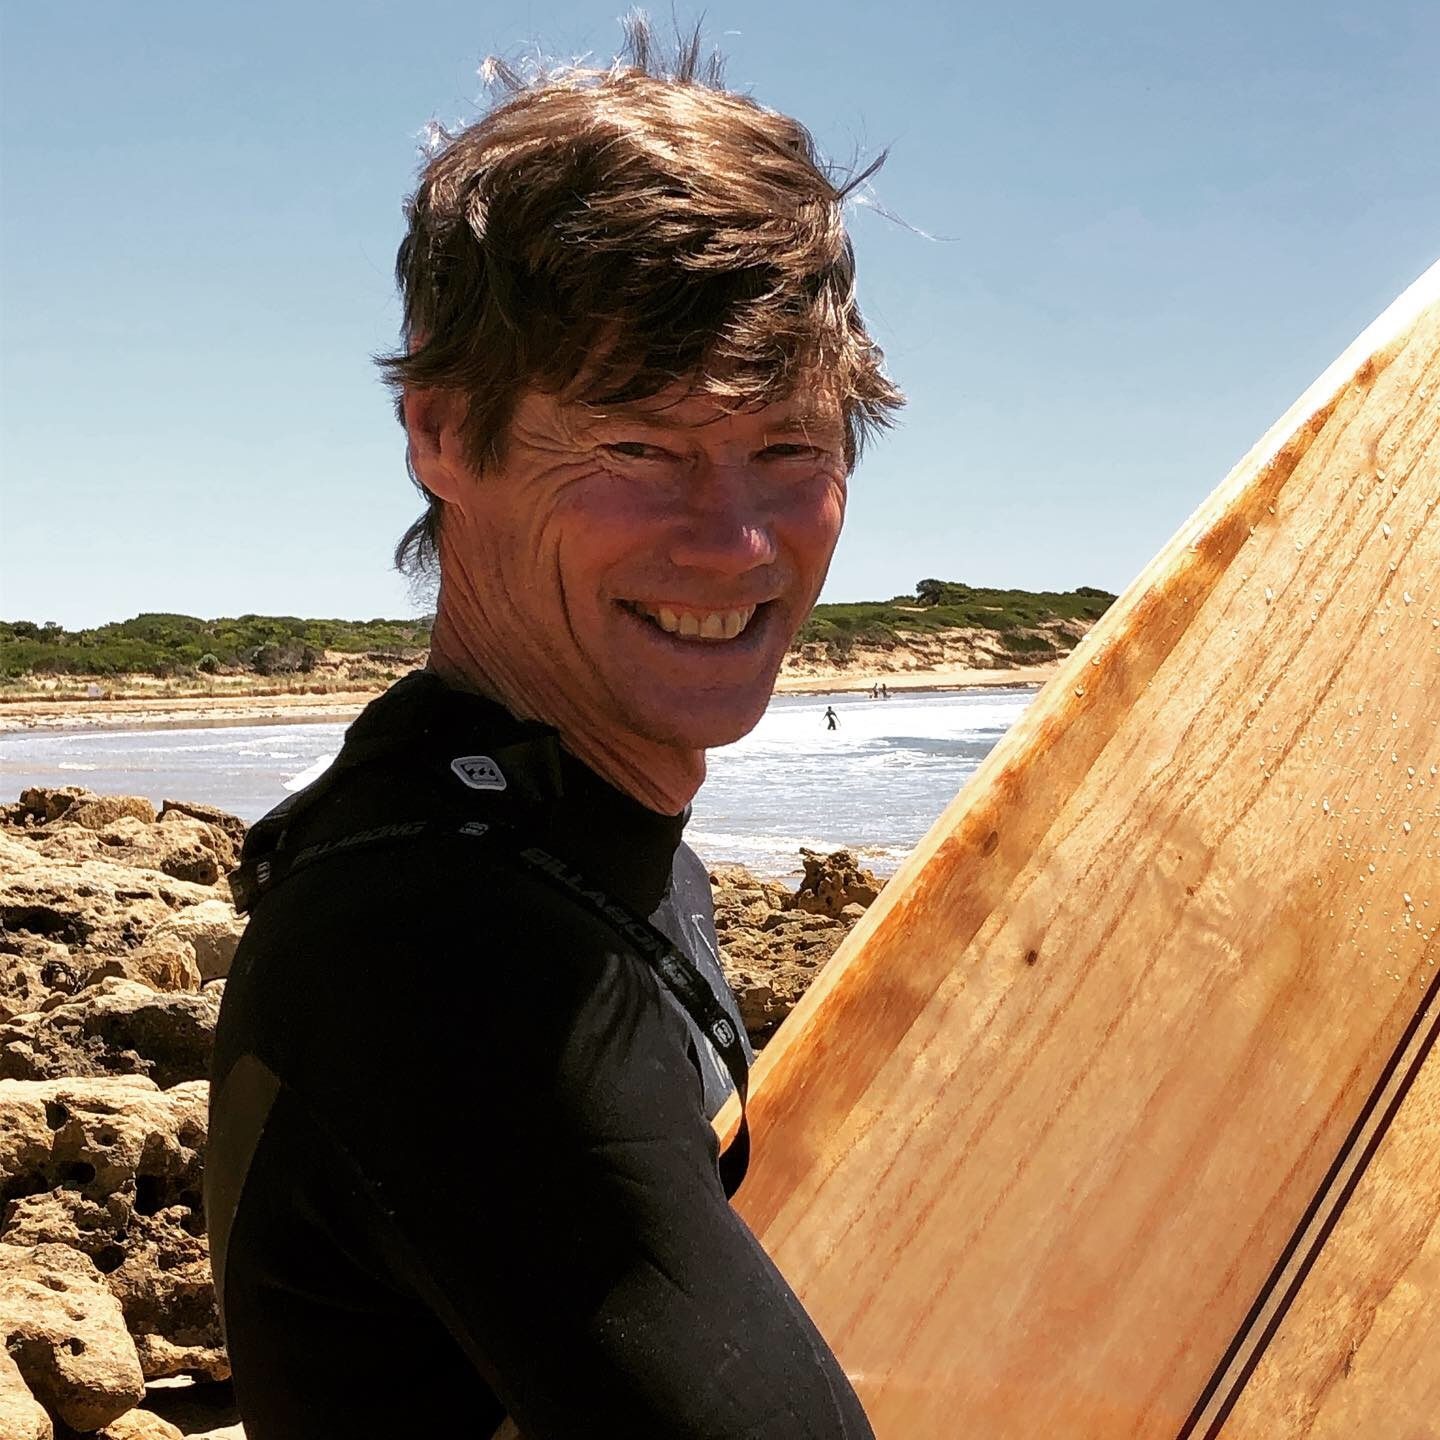 Phil a very happy surfboard maker taking his board out for its inaugural surf.